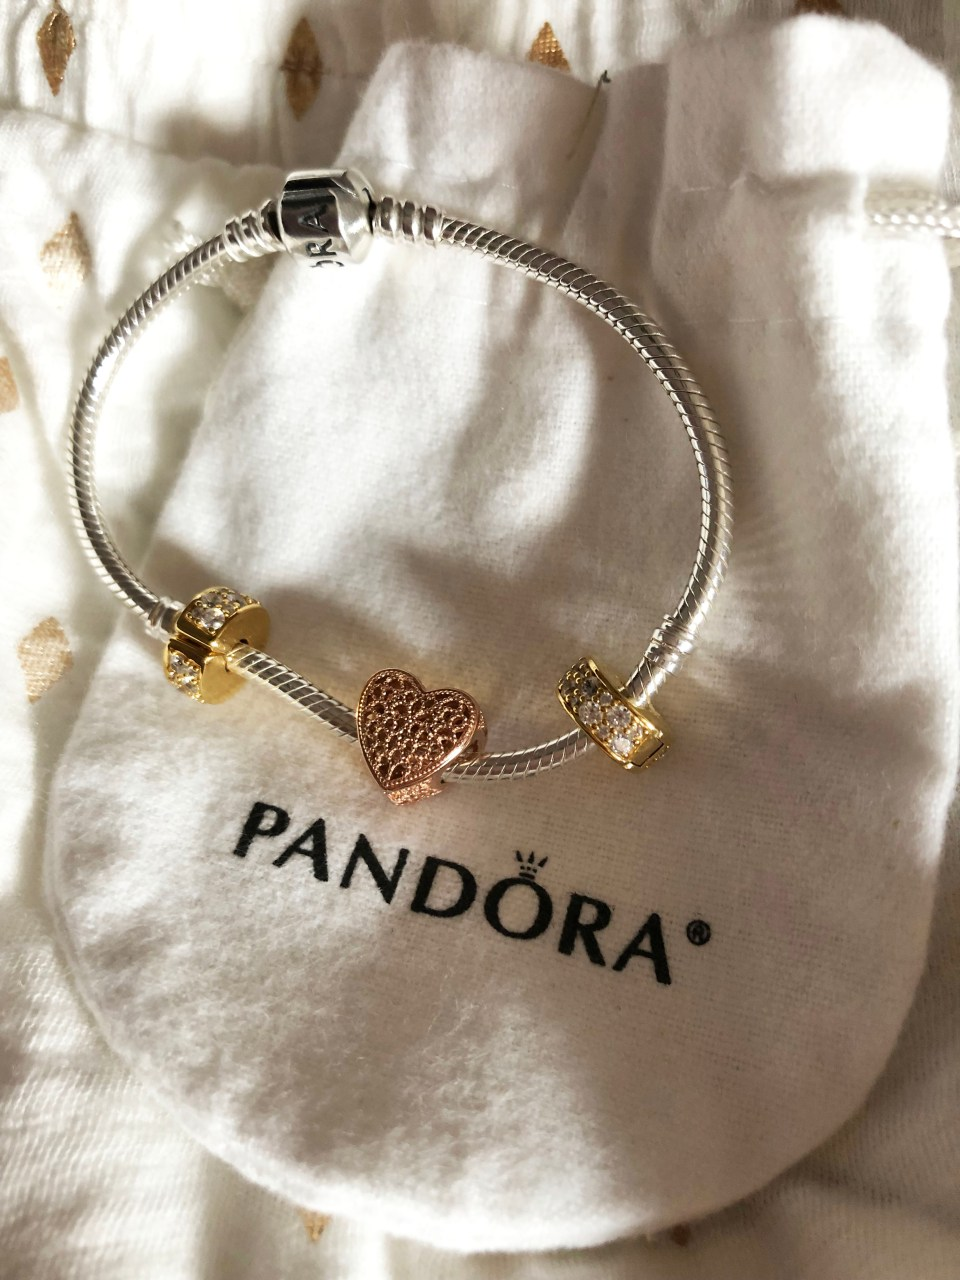 Pandora Bracelet - Filled with Romance Charm 1